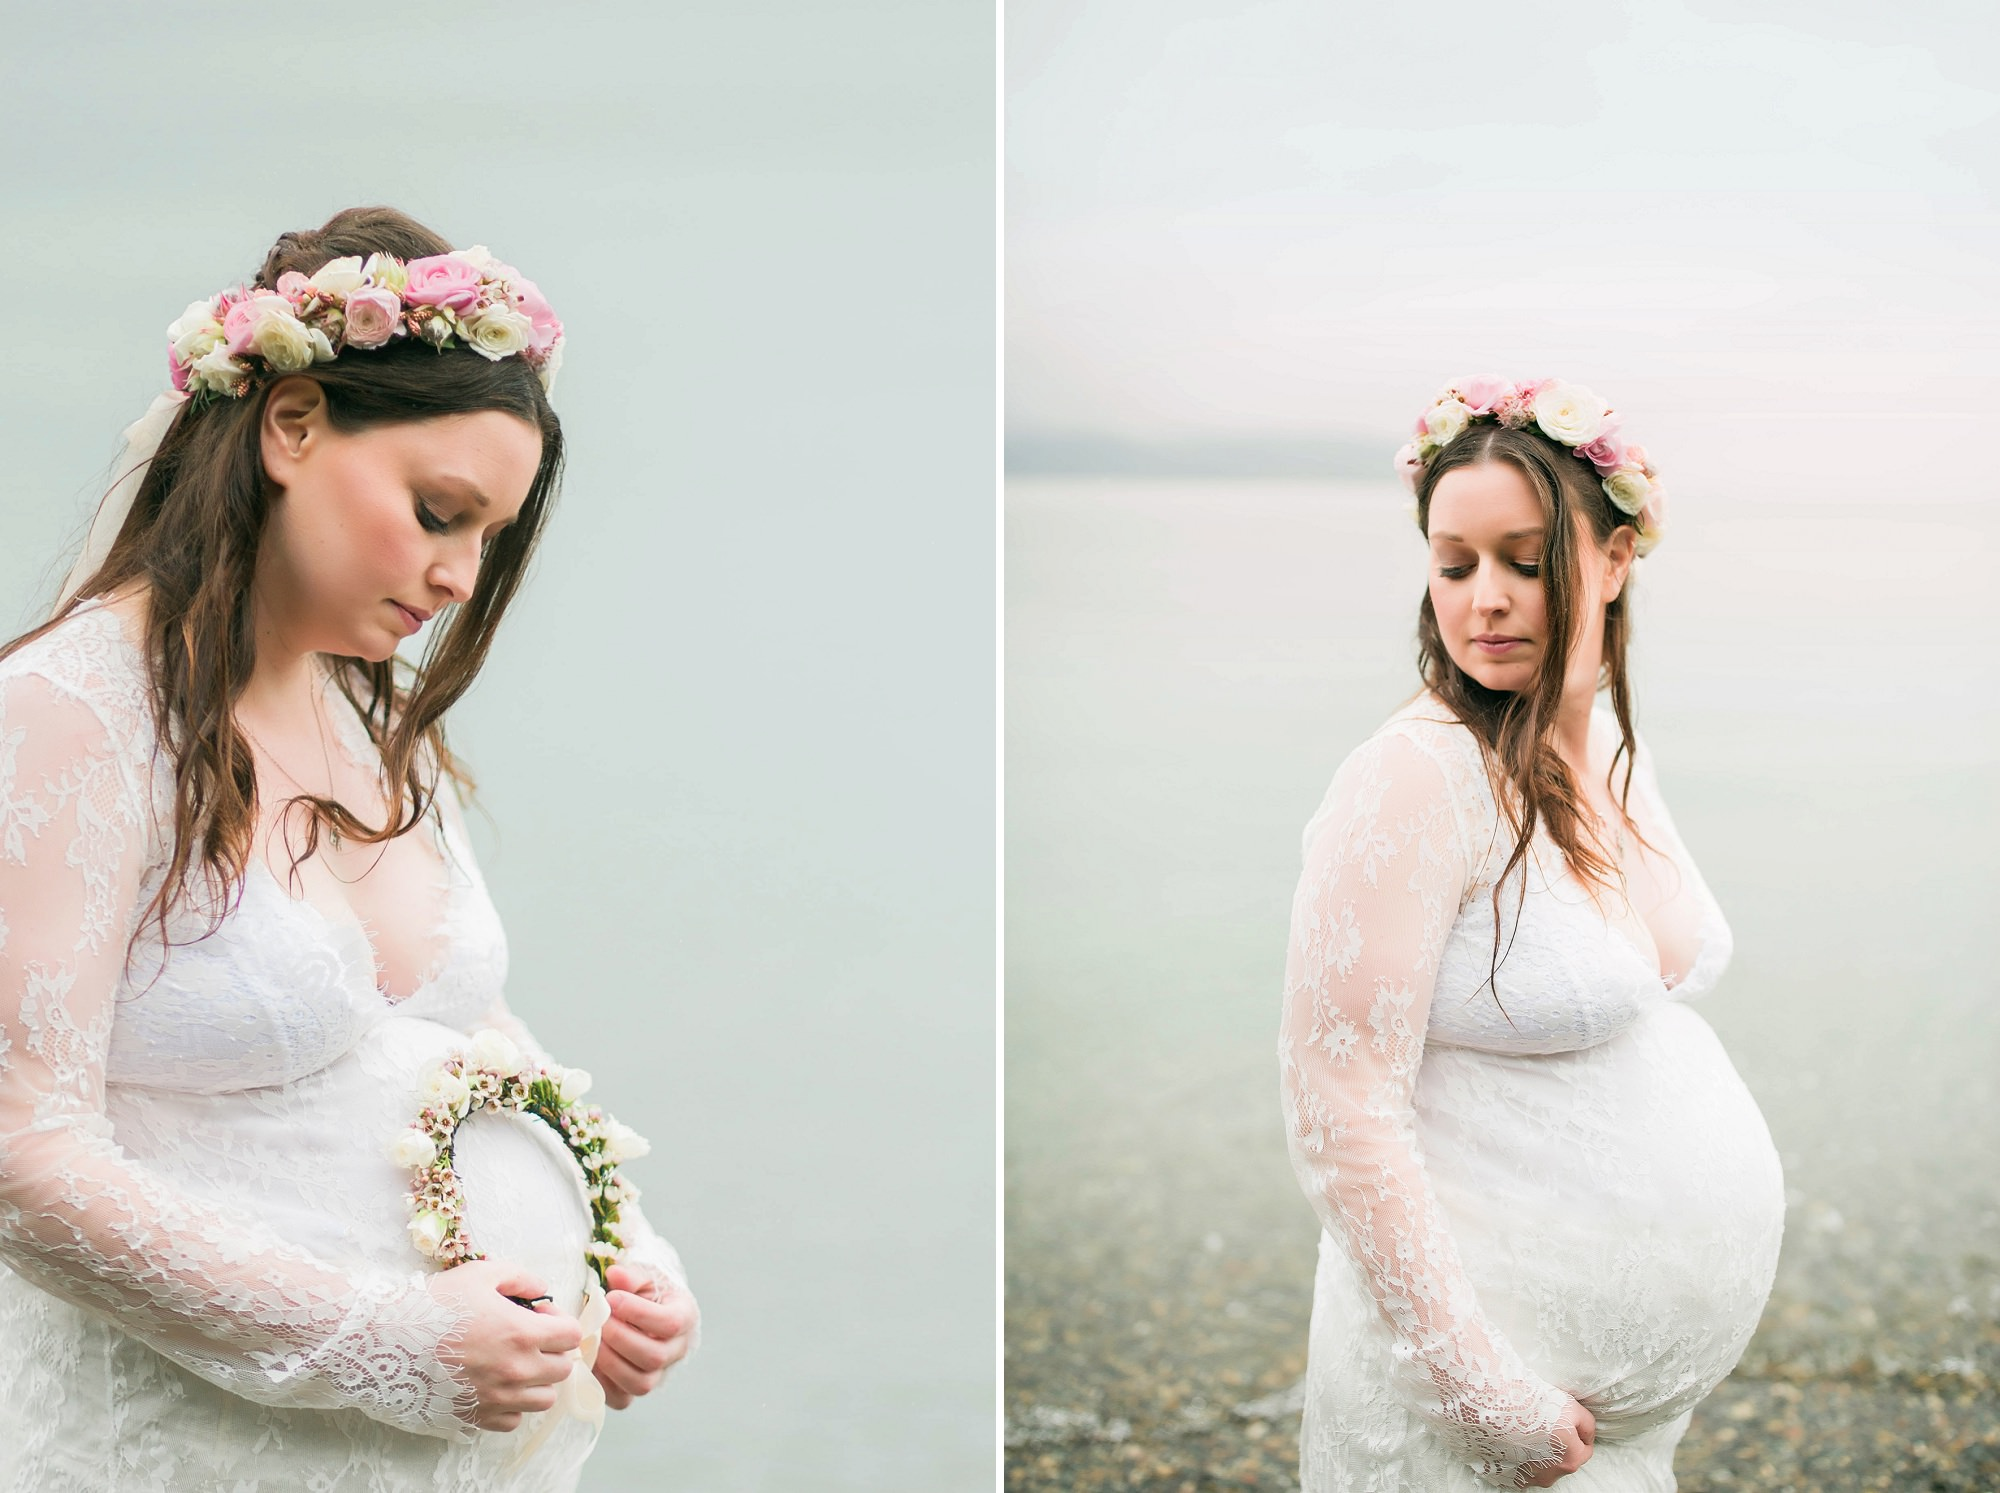 Pregnant lady On The Beach In A Lace Dress